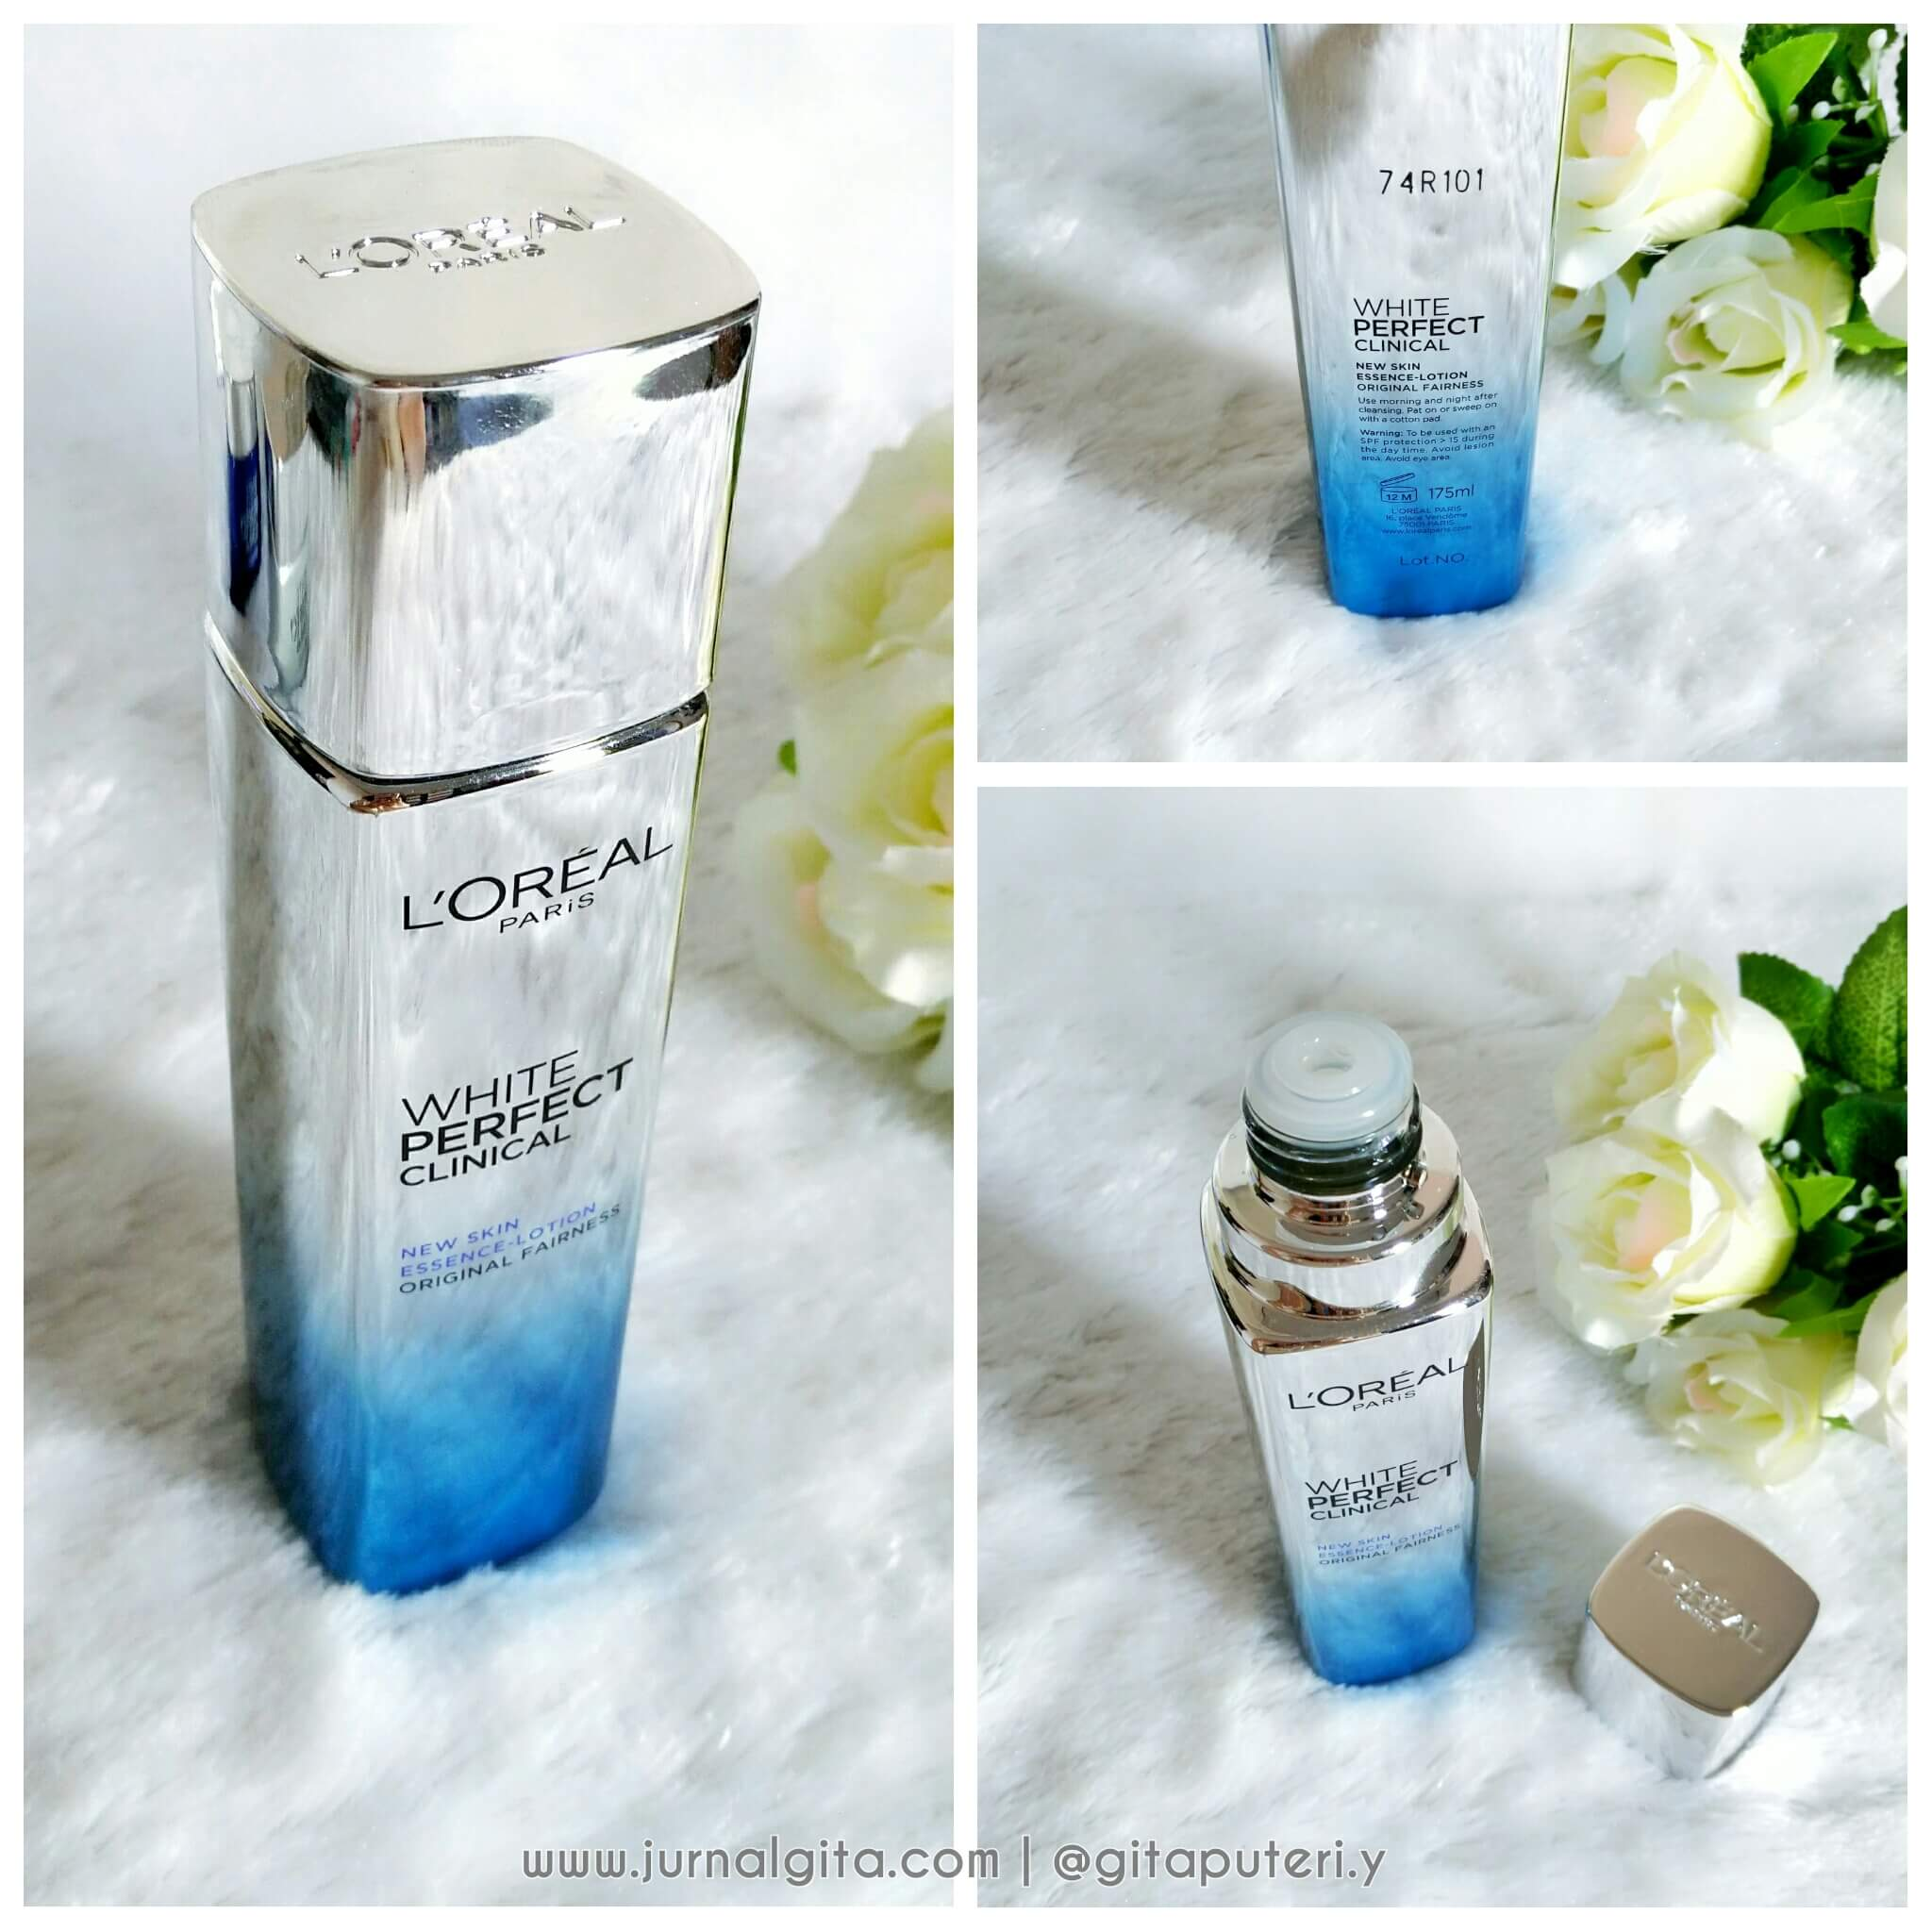 gambar review ke-11 untuk L'oreal Paris White Perfect Clinical Essence Lotion